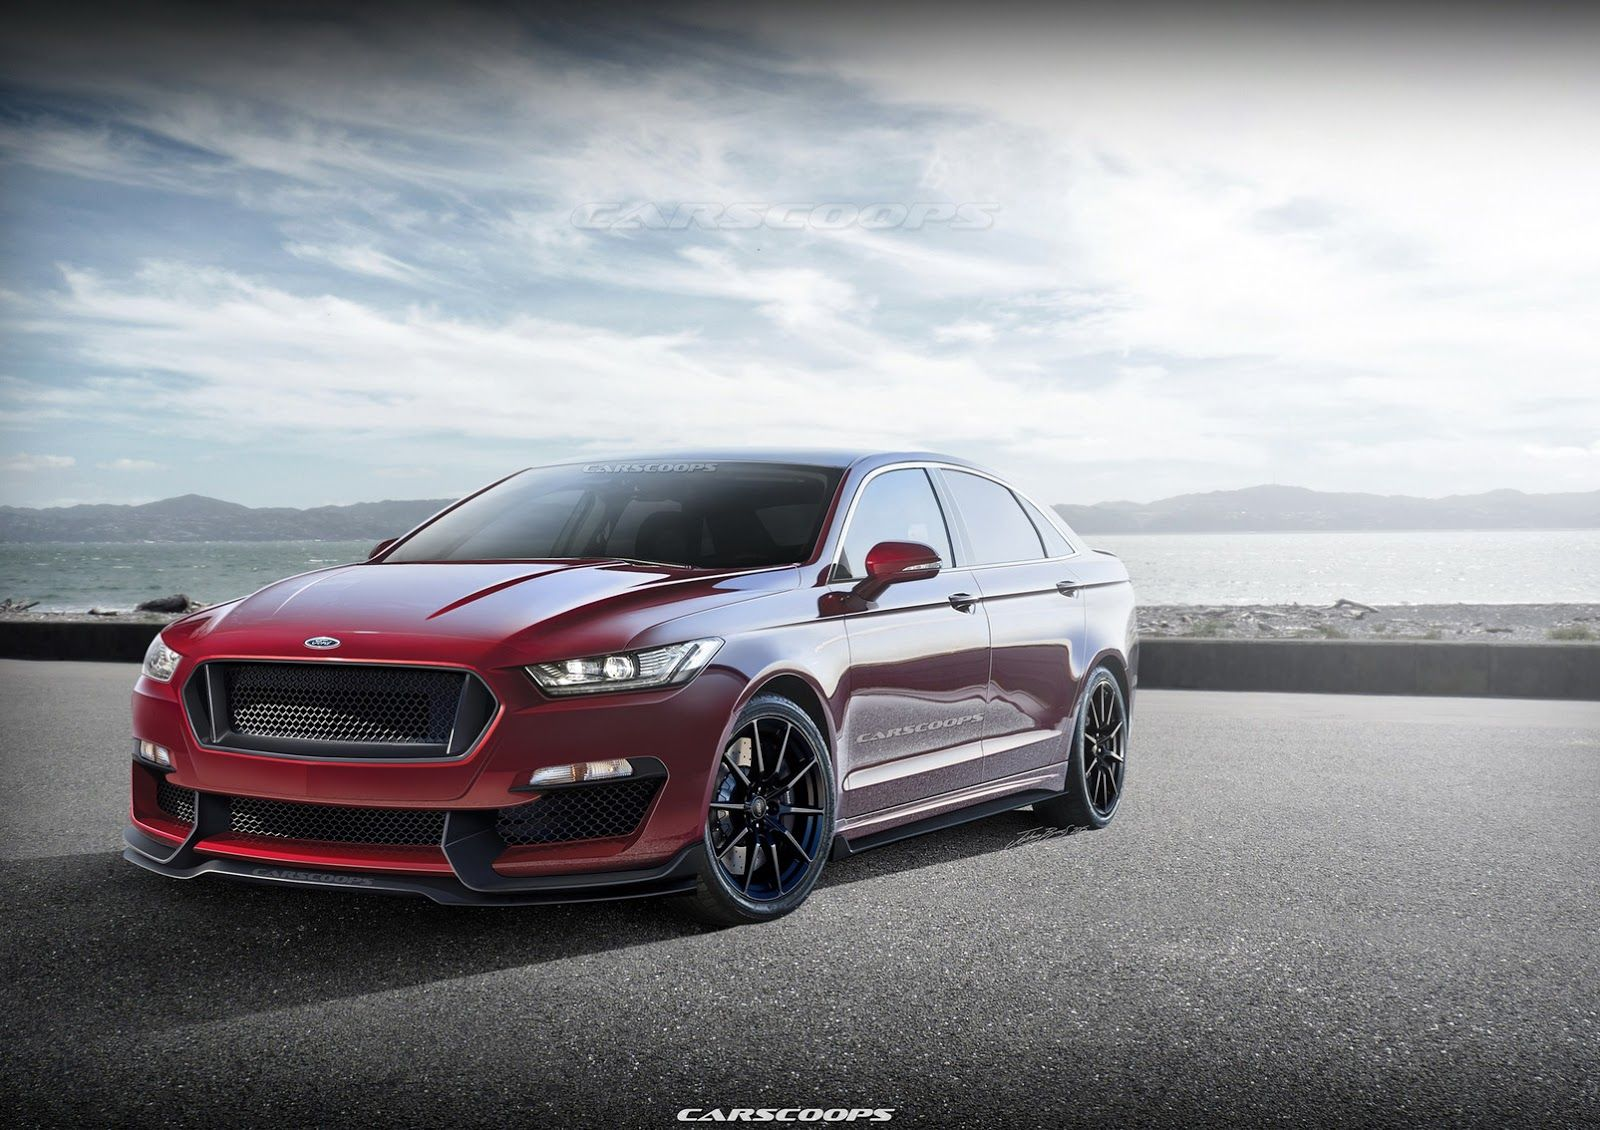 Ford taurus sho white center car image pinterest ford taurus sho ford and cars